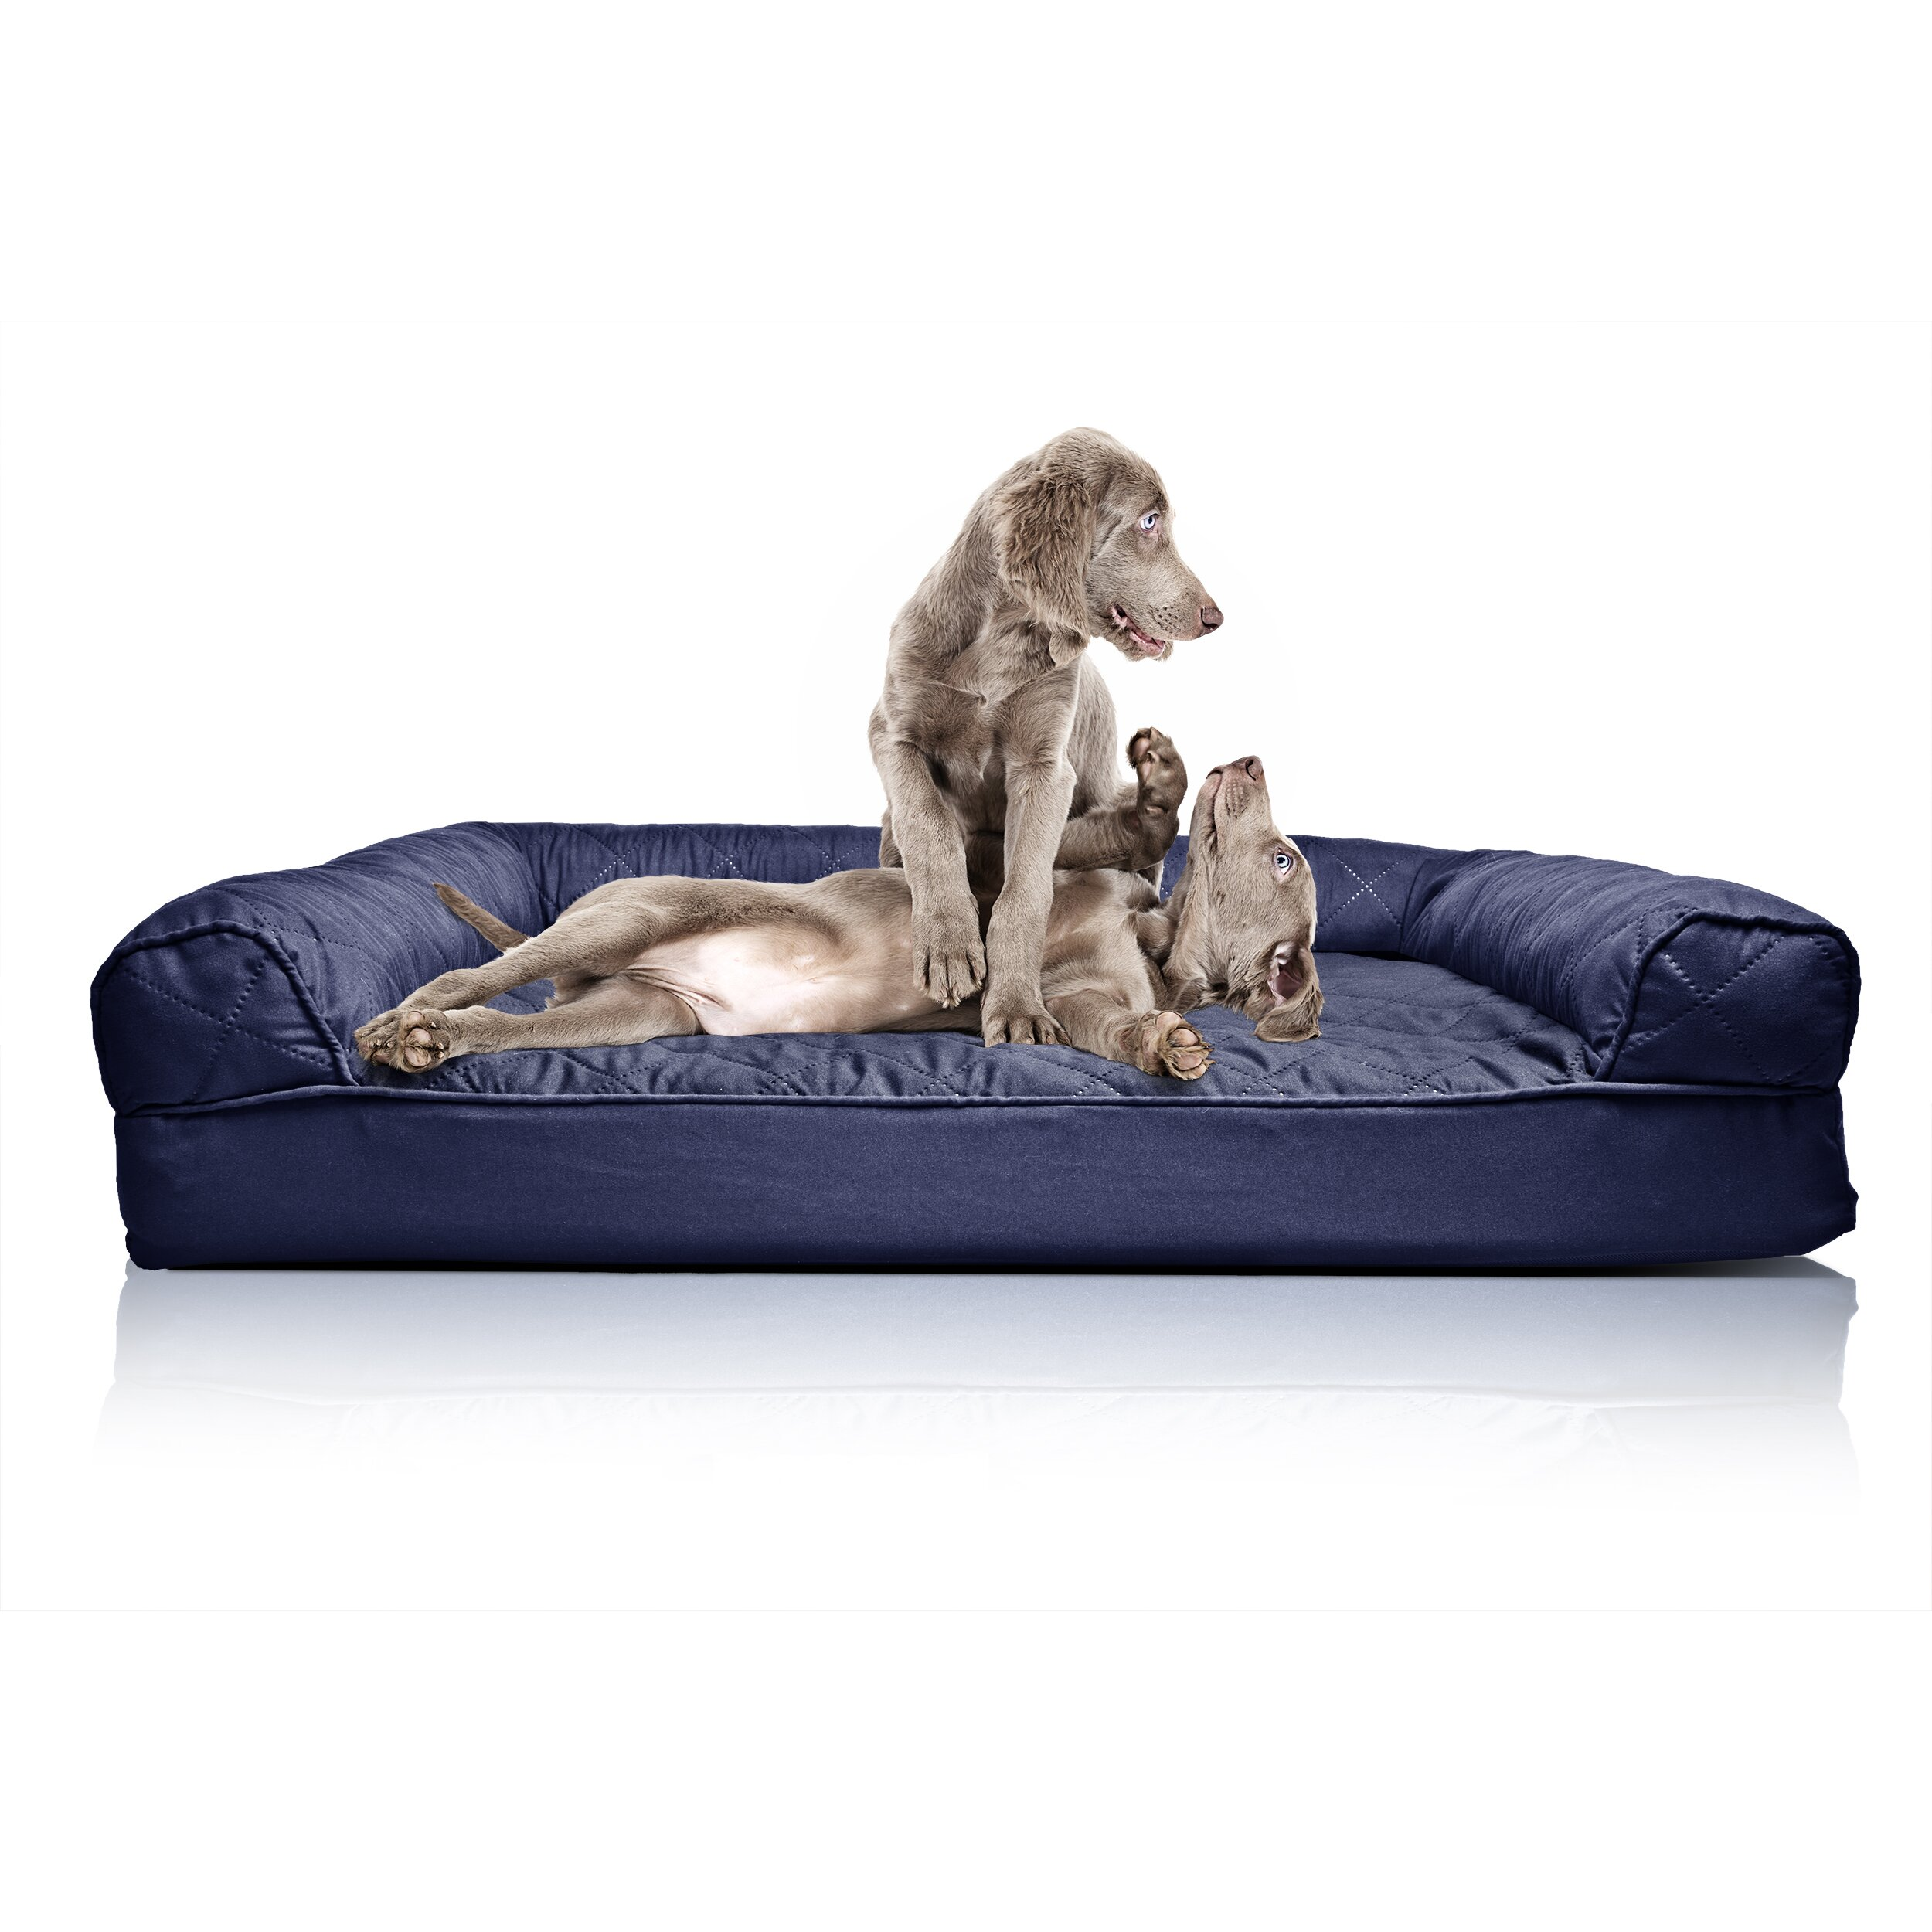 Zoey Tails Quilted Orthopedic Sofa Style Dog Bed Amp Reviews